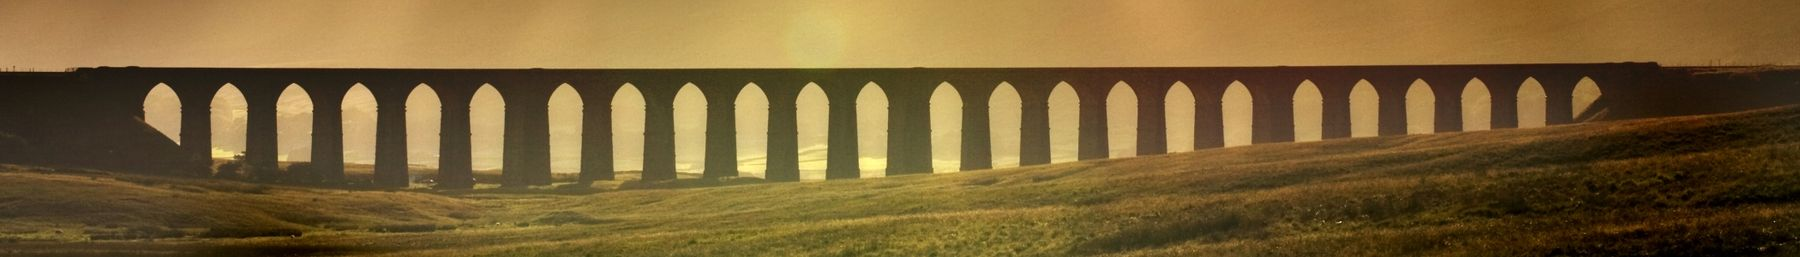 Ribblehead Viaduct in North Yorkshire